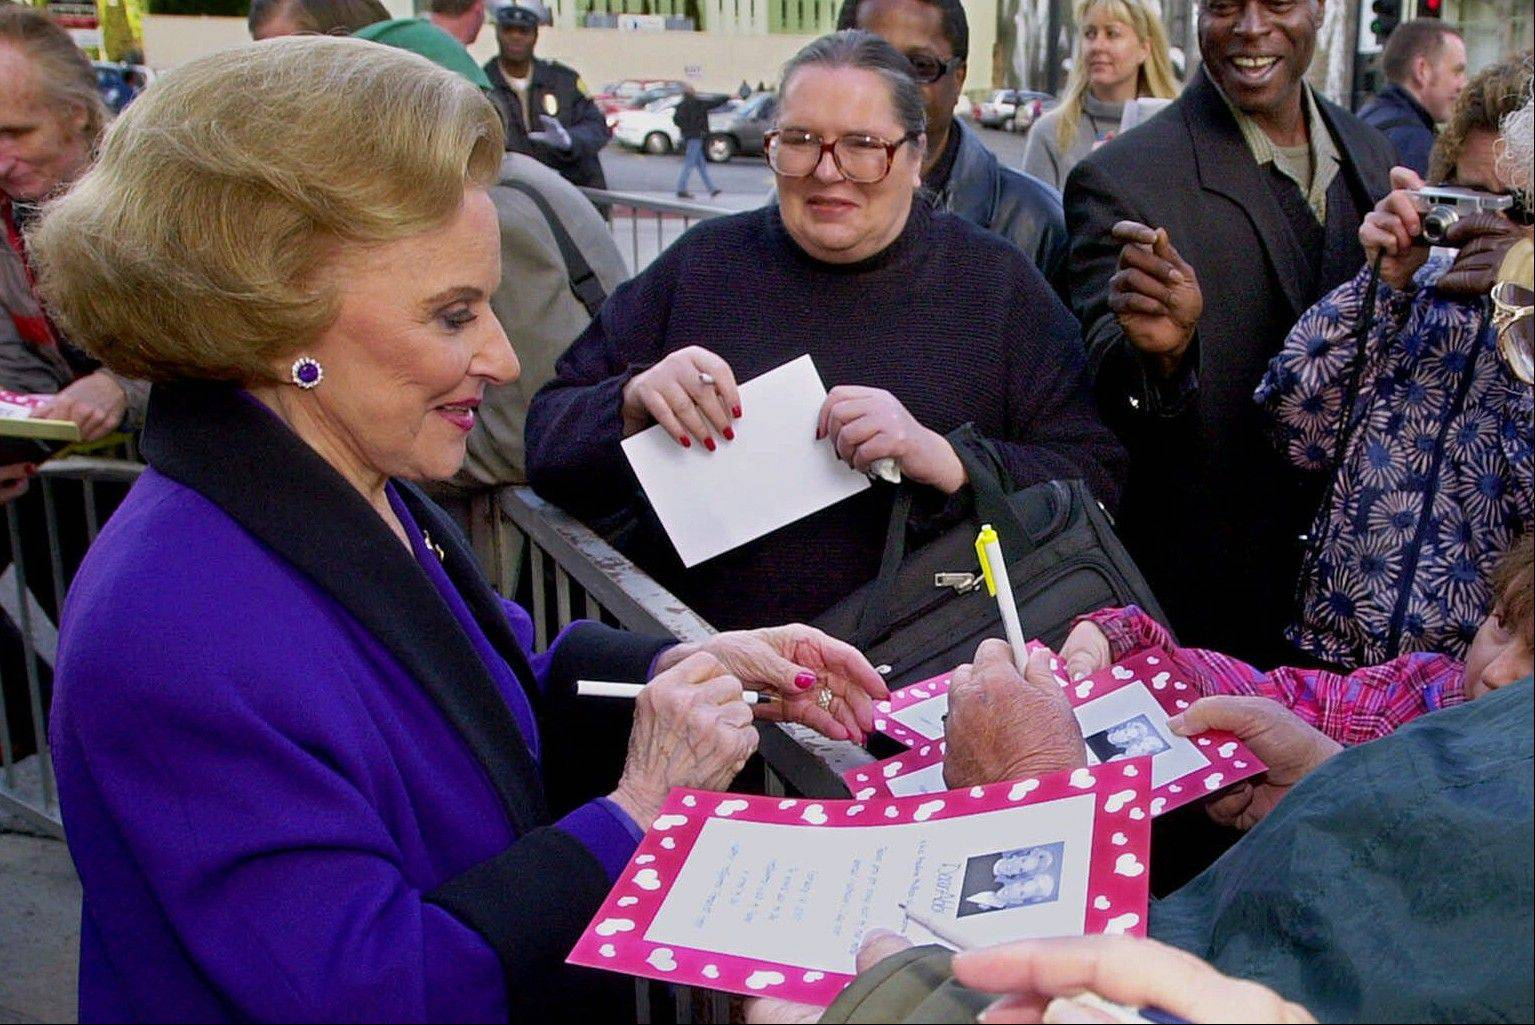 """Dear Abby"" advice columnist Pauline Friedman Phillips, 82, known to millions of readers as Abigail van Buren, signs autographs for some of dozens of fans after the dedication of a ""Dear Abby"" star on the Hollywood Walk of Fame in Los Angeles."